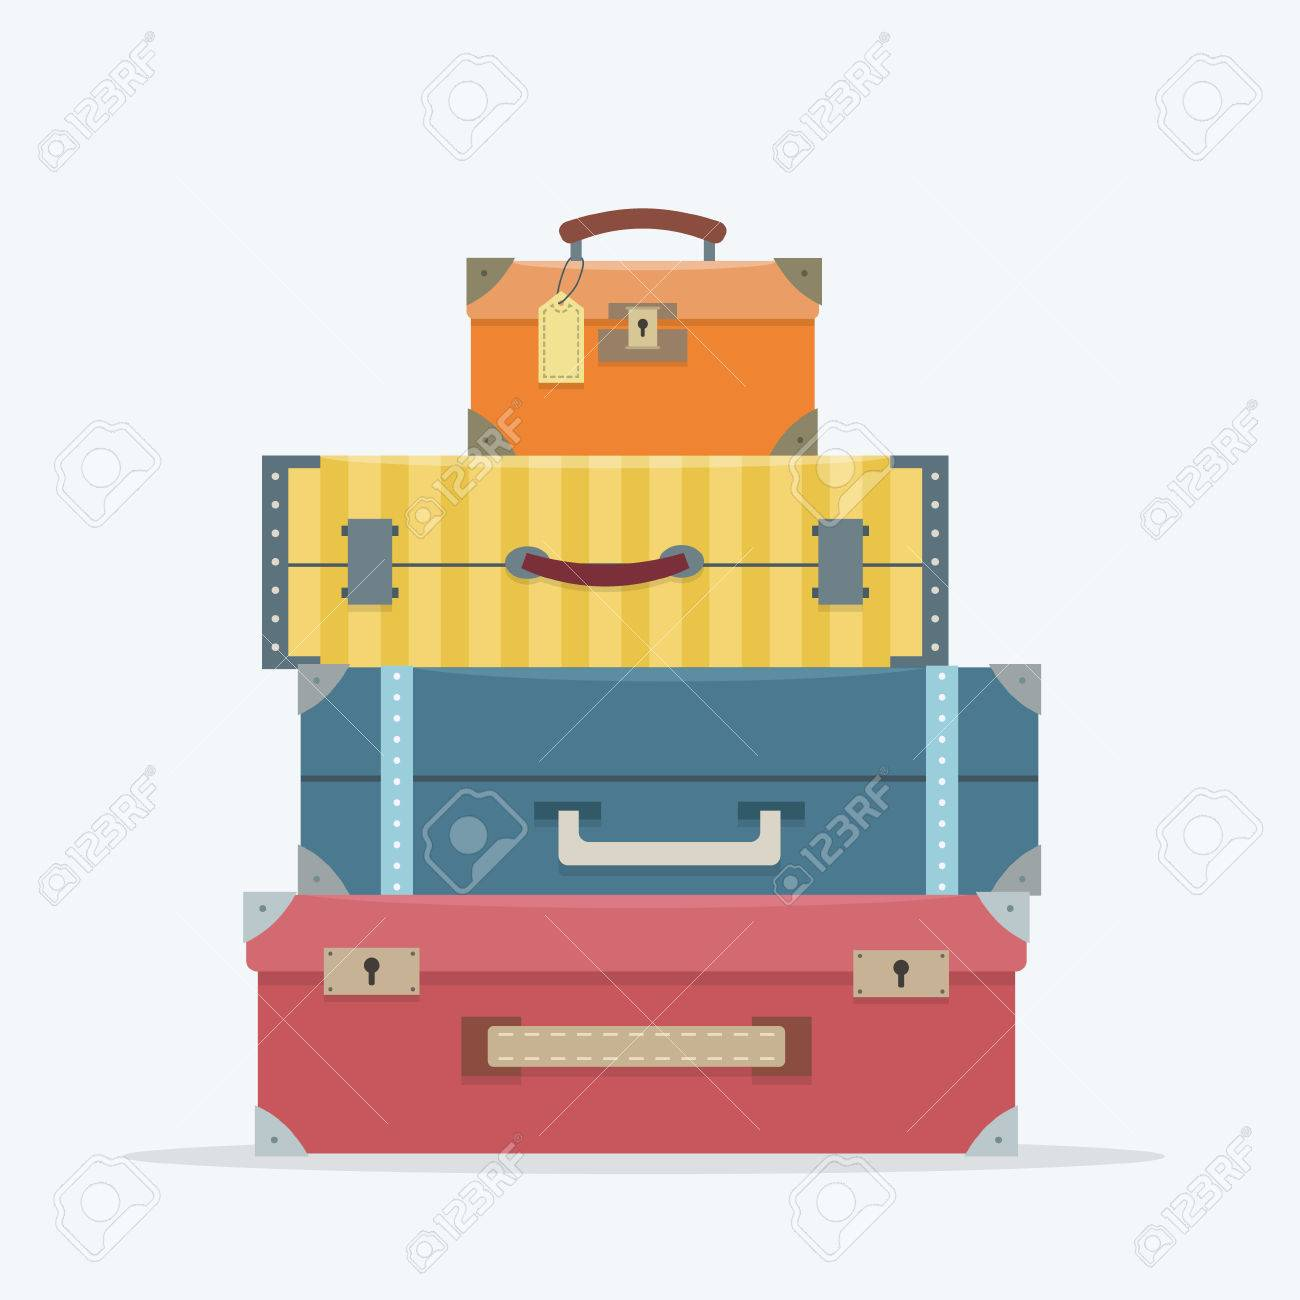 Baggage on background. Flat style vector illustration. - 52617210